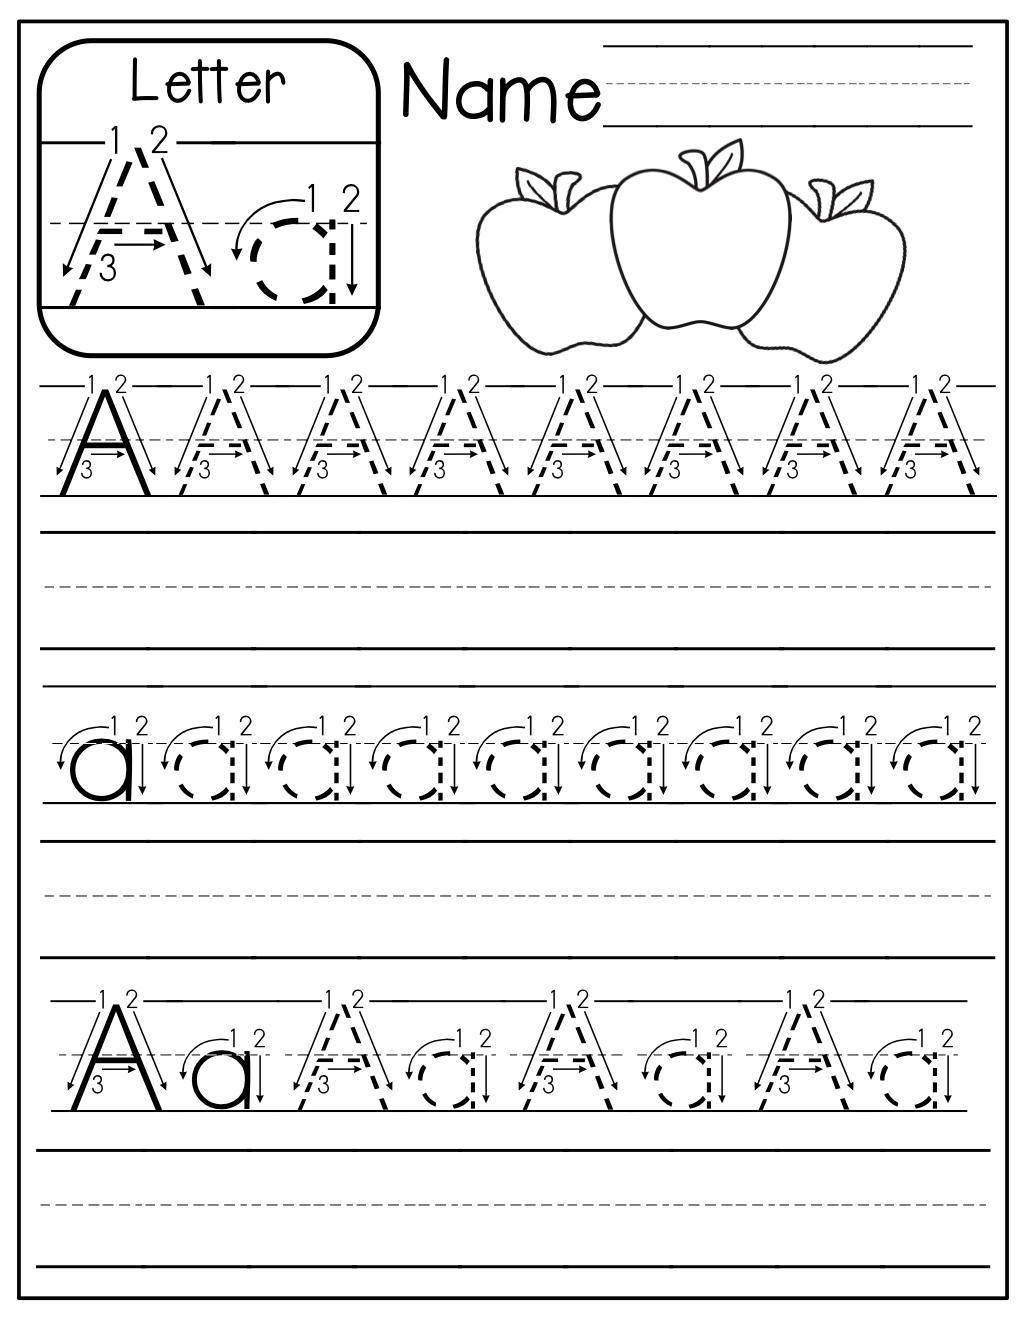 Freebie: A-Z Handwriting Practice Pages! | Kindergarten intended for Tracing Your Name Template